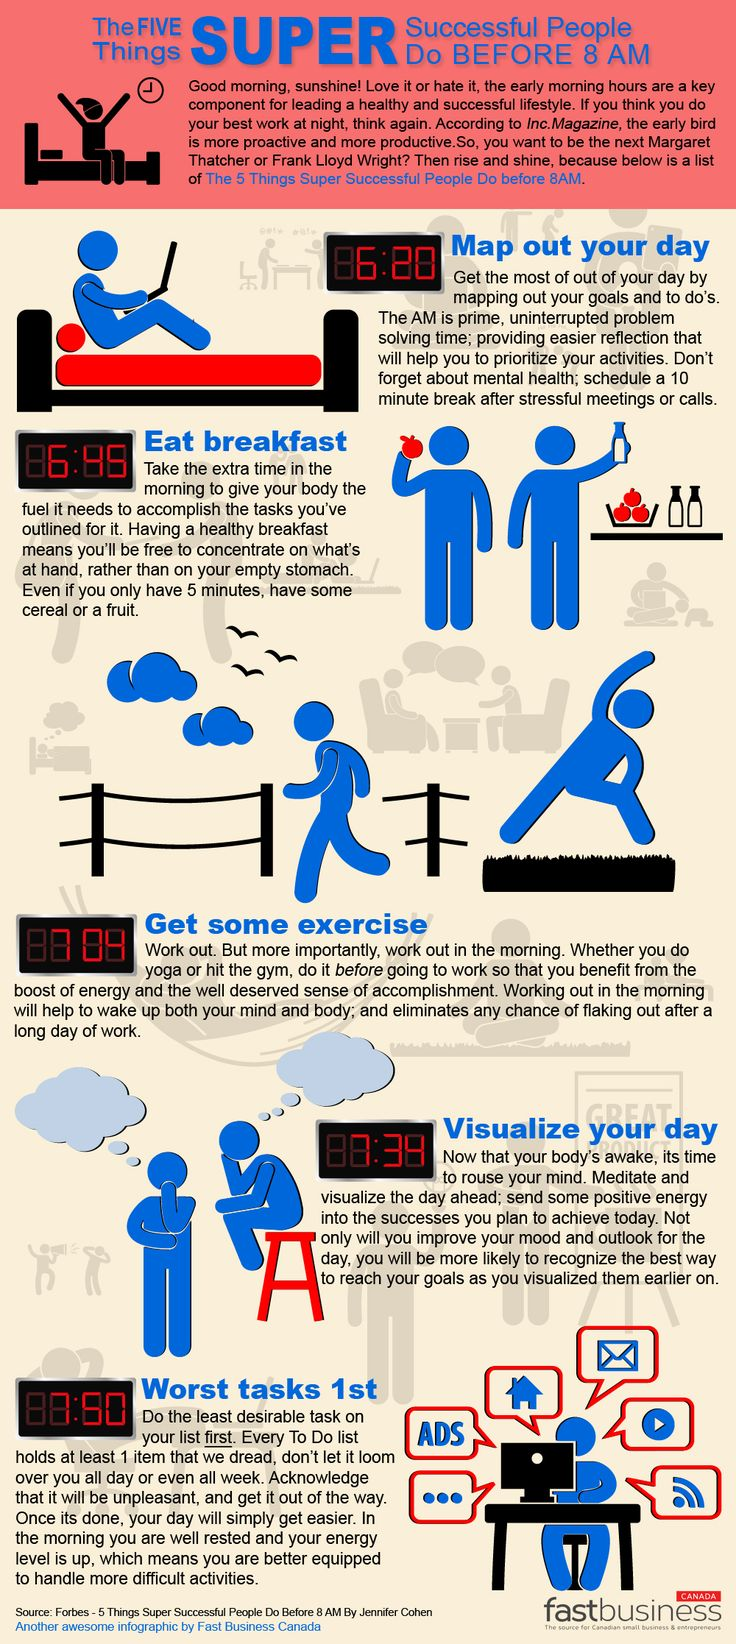 infographic: the 5 habits of highly successful people they do before 8 am. FIVE Things Super Successful People Do Before 8AM